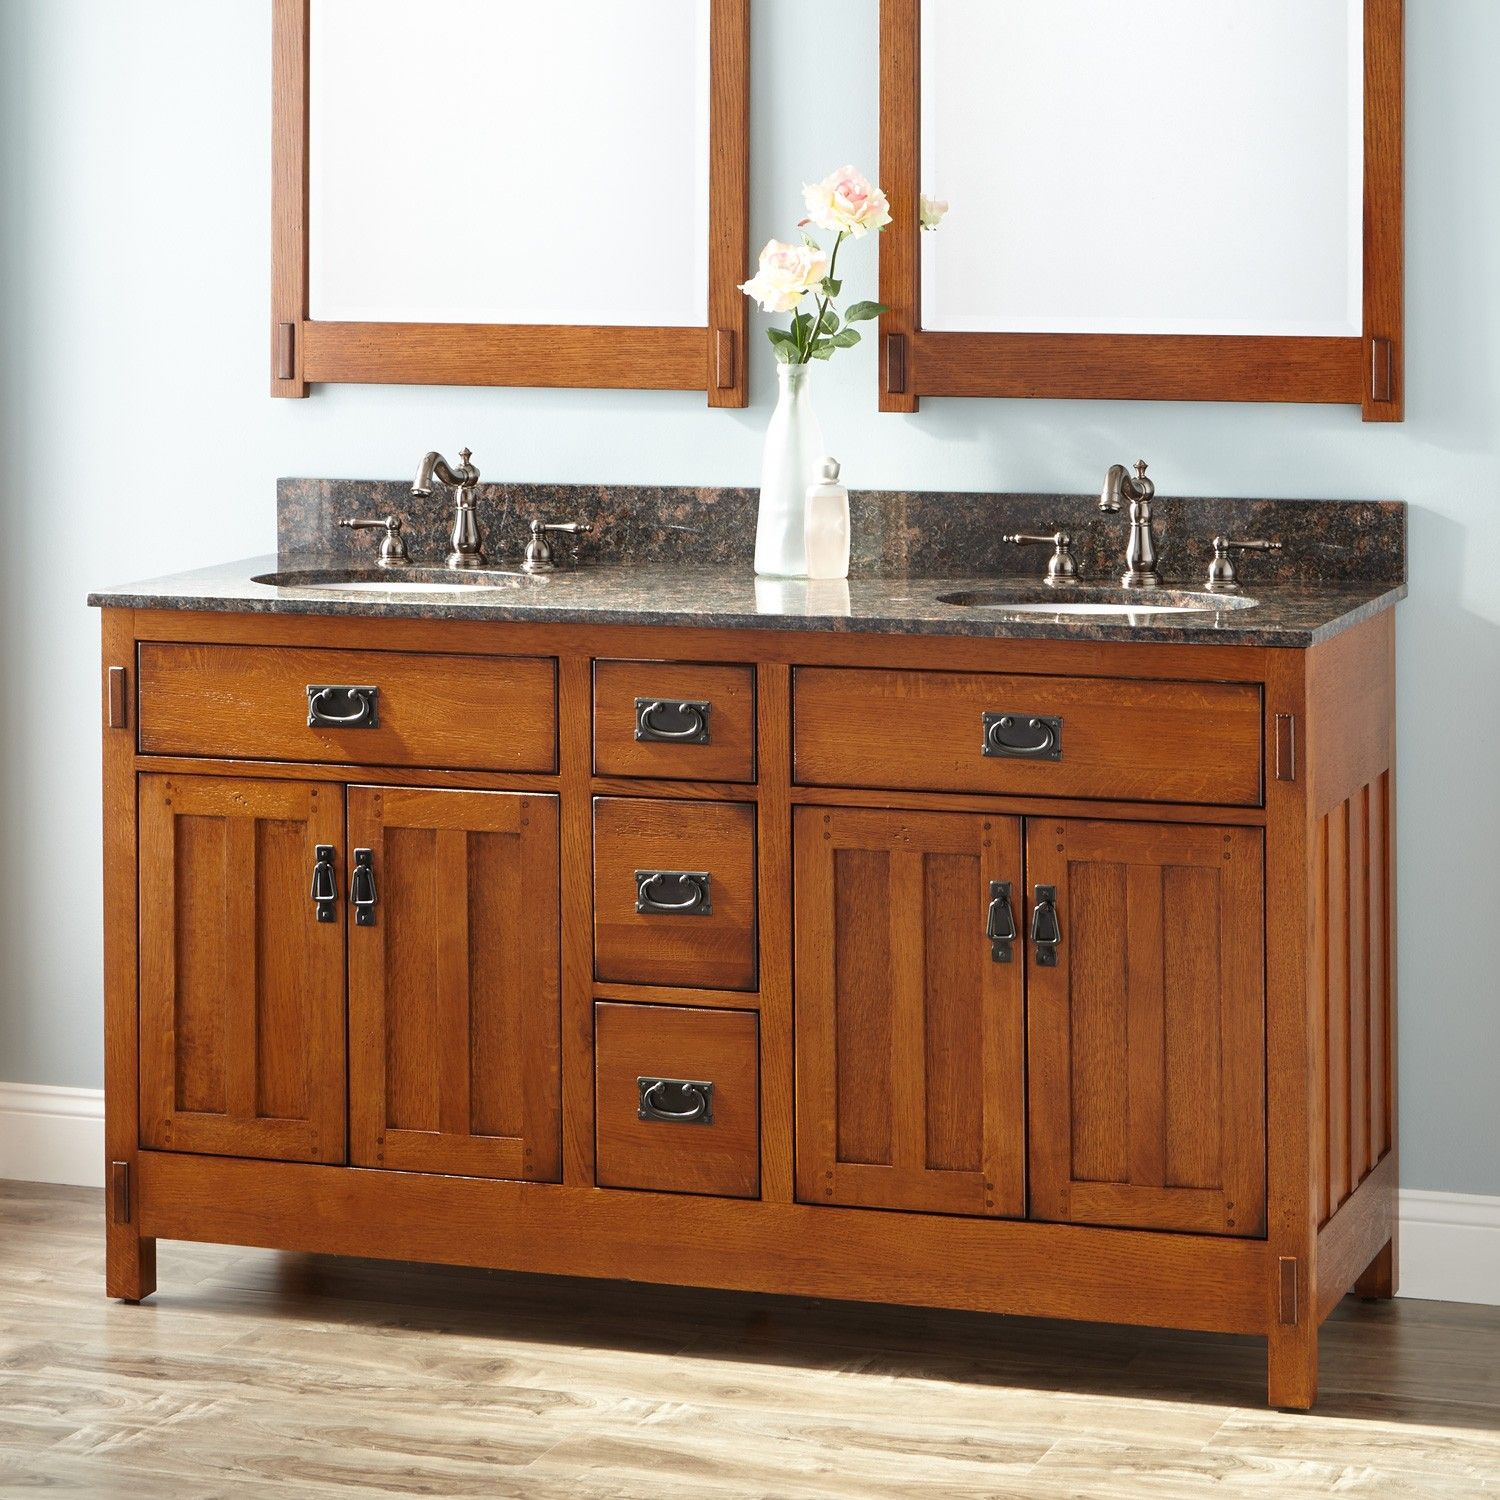 60 American Craftsman Double Vanity For Undermount Sinks Rustic Oak American Craftsman Oak